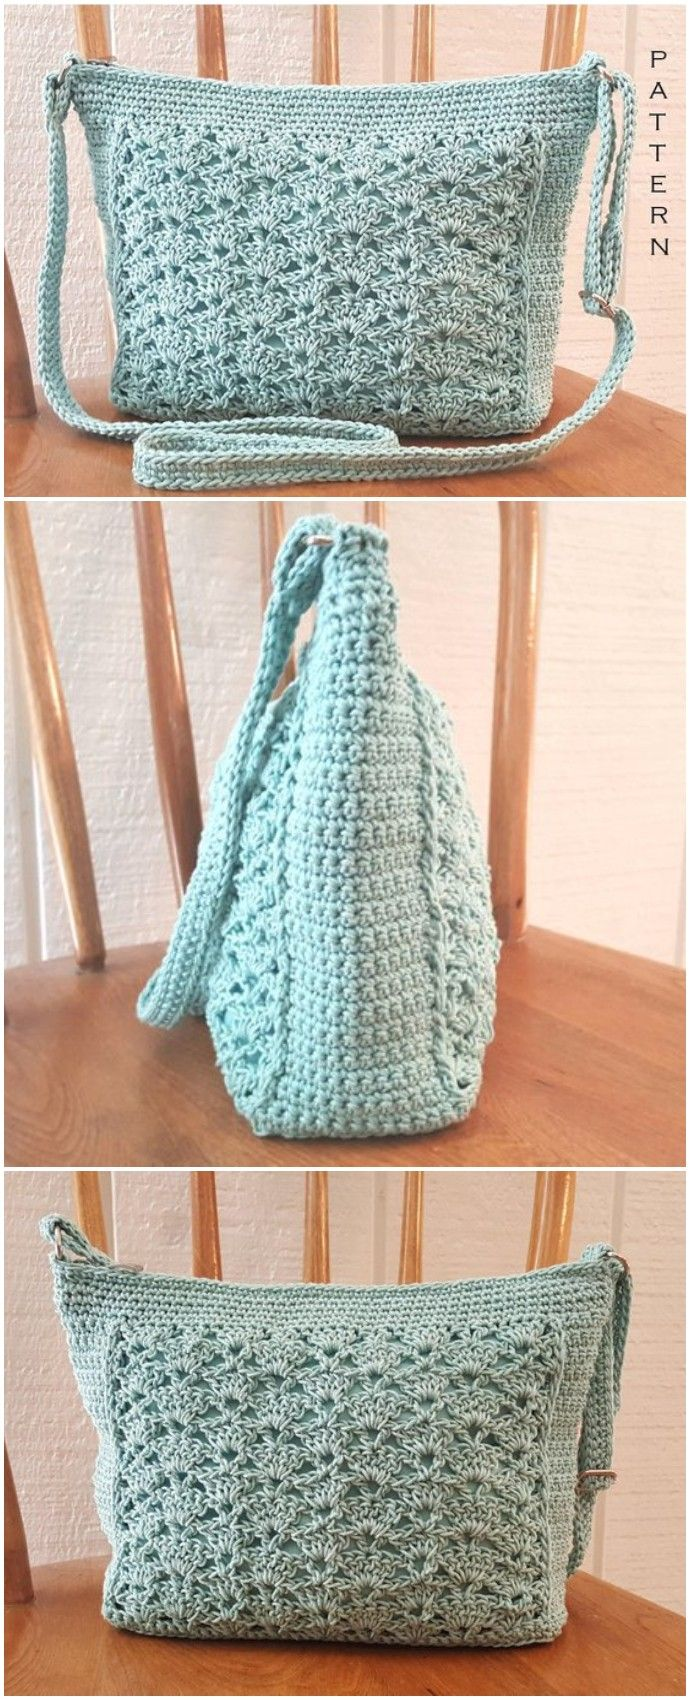 Find very interestingand beautiful free crochet bag patterns here includingc…